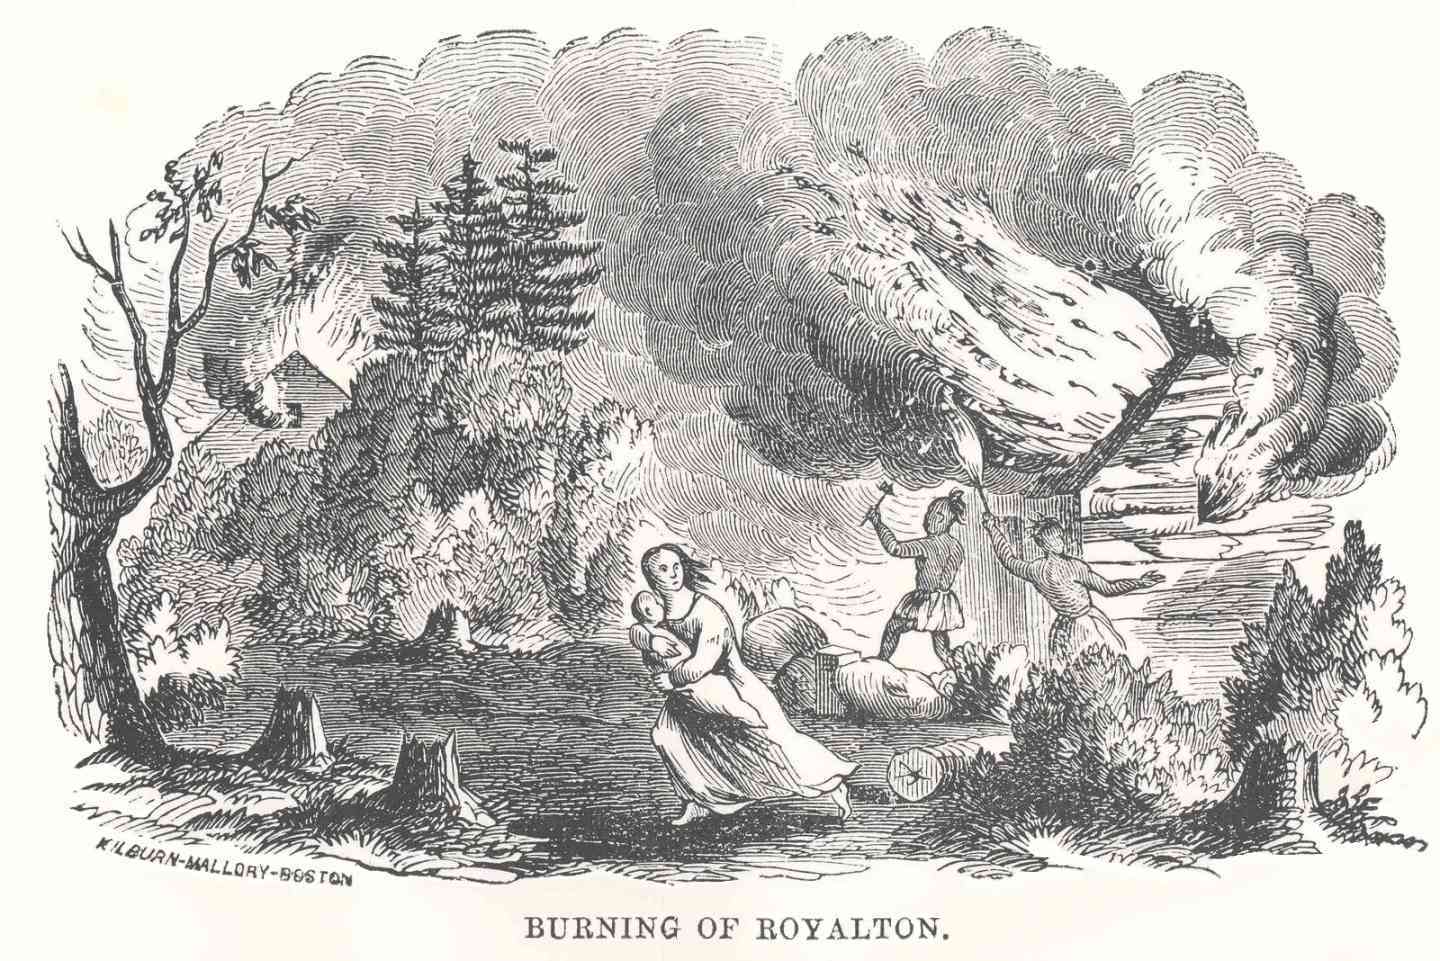 Burning of Royalton